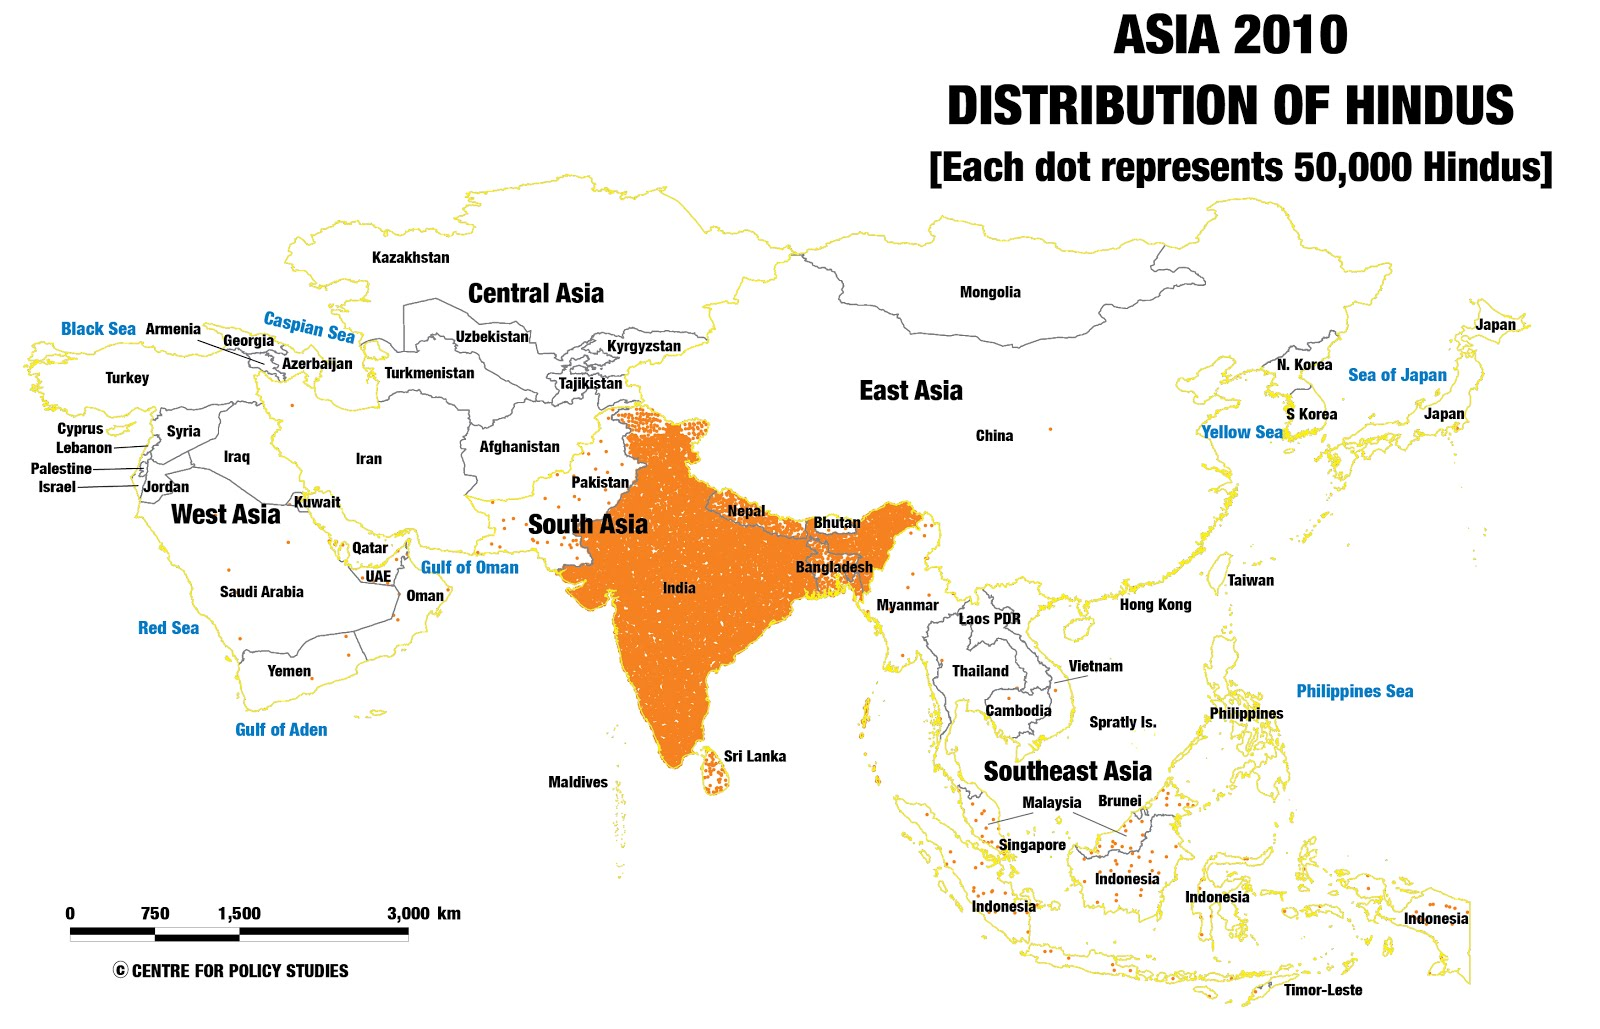 Religion Map Of South Asia.Centre For Policy Studies Religion Data Of Census 2011 Xlv Asia Maps 2